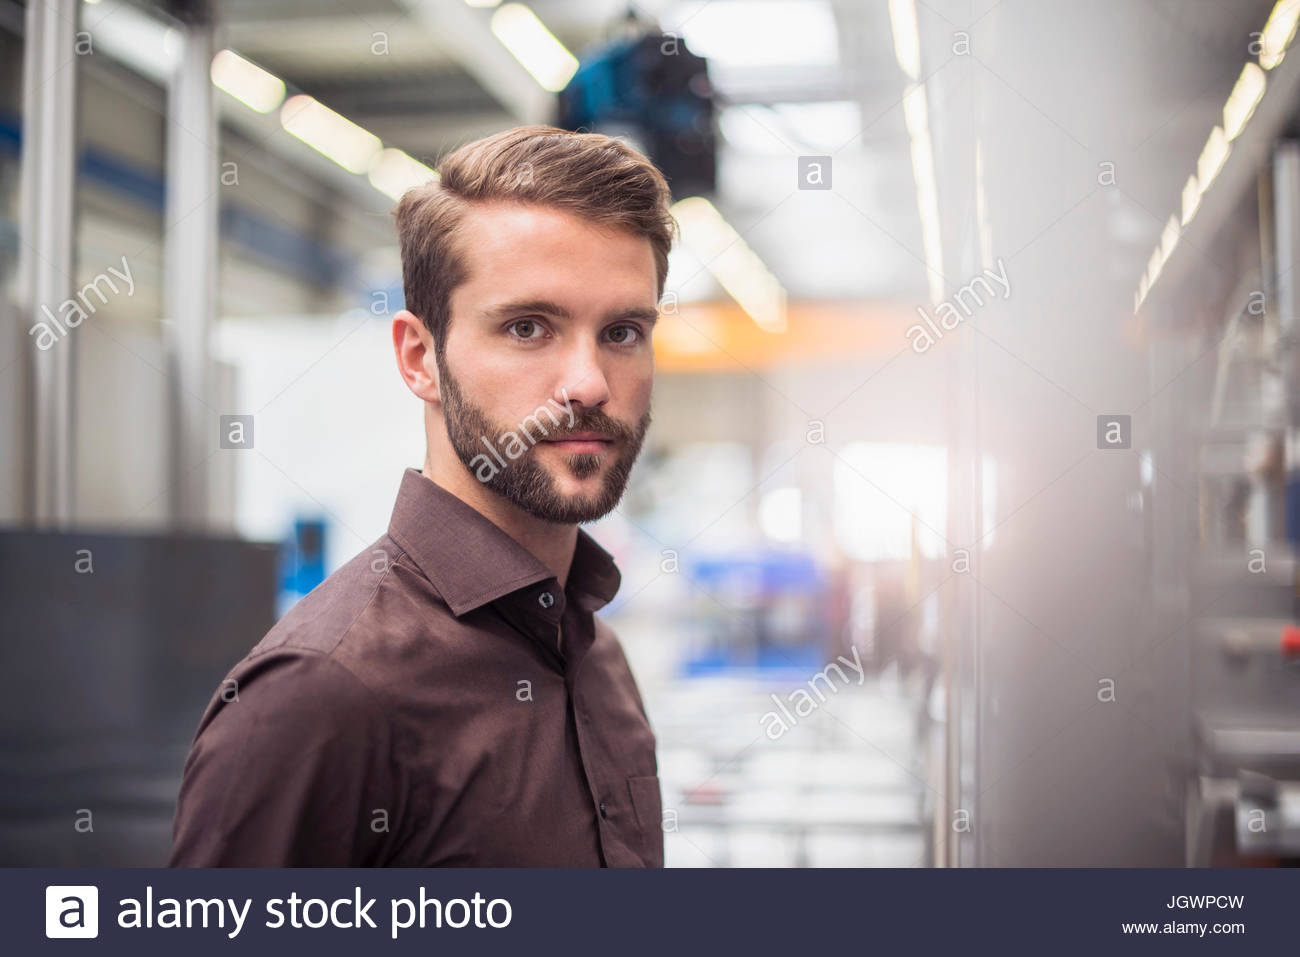 Portrait of young male supervisor in distribution warehouse - Stock Image